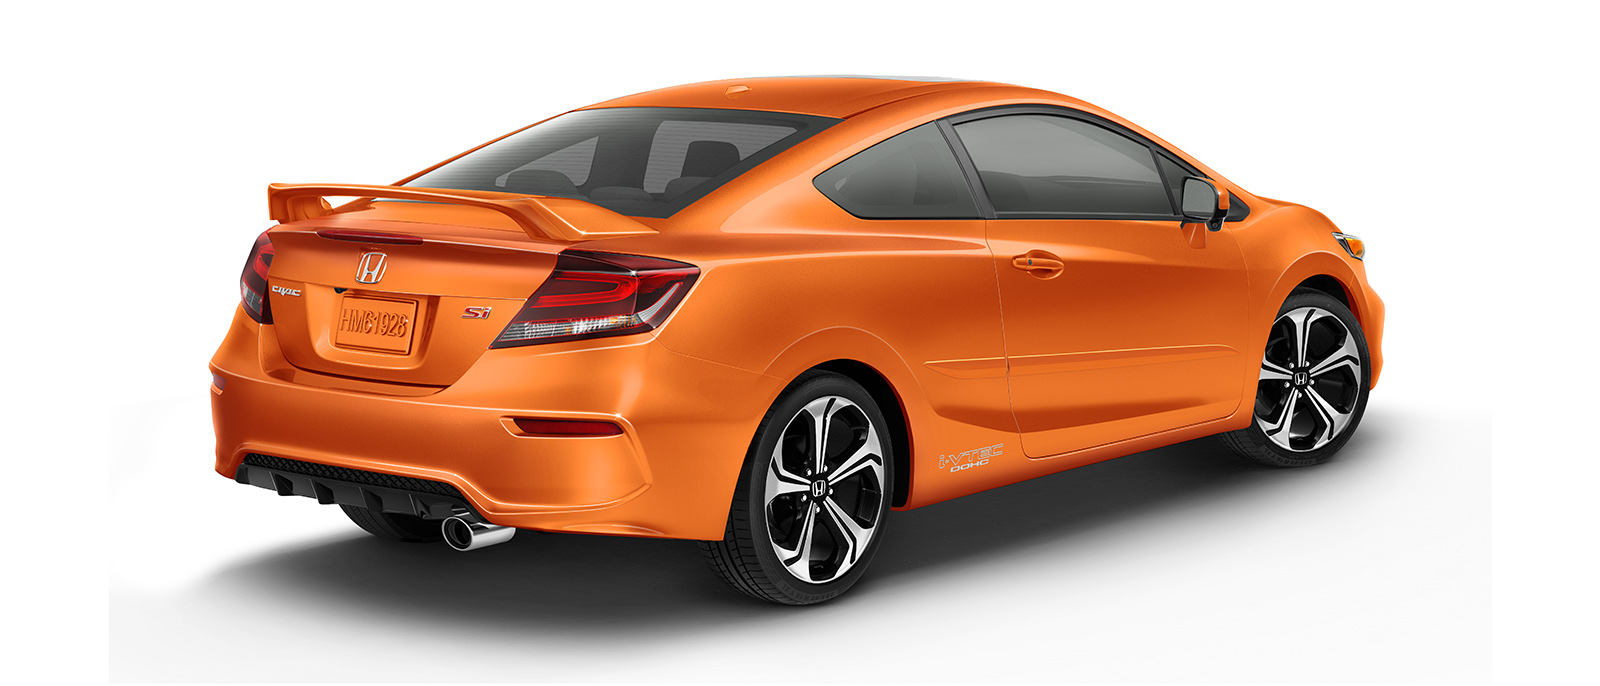 The 2015 Ford Focus St Falls Short On Residual Value